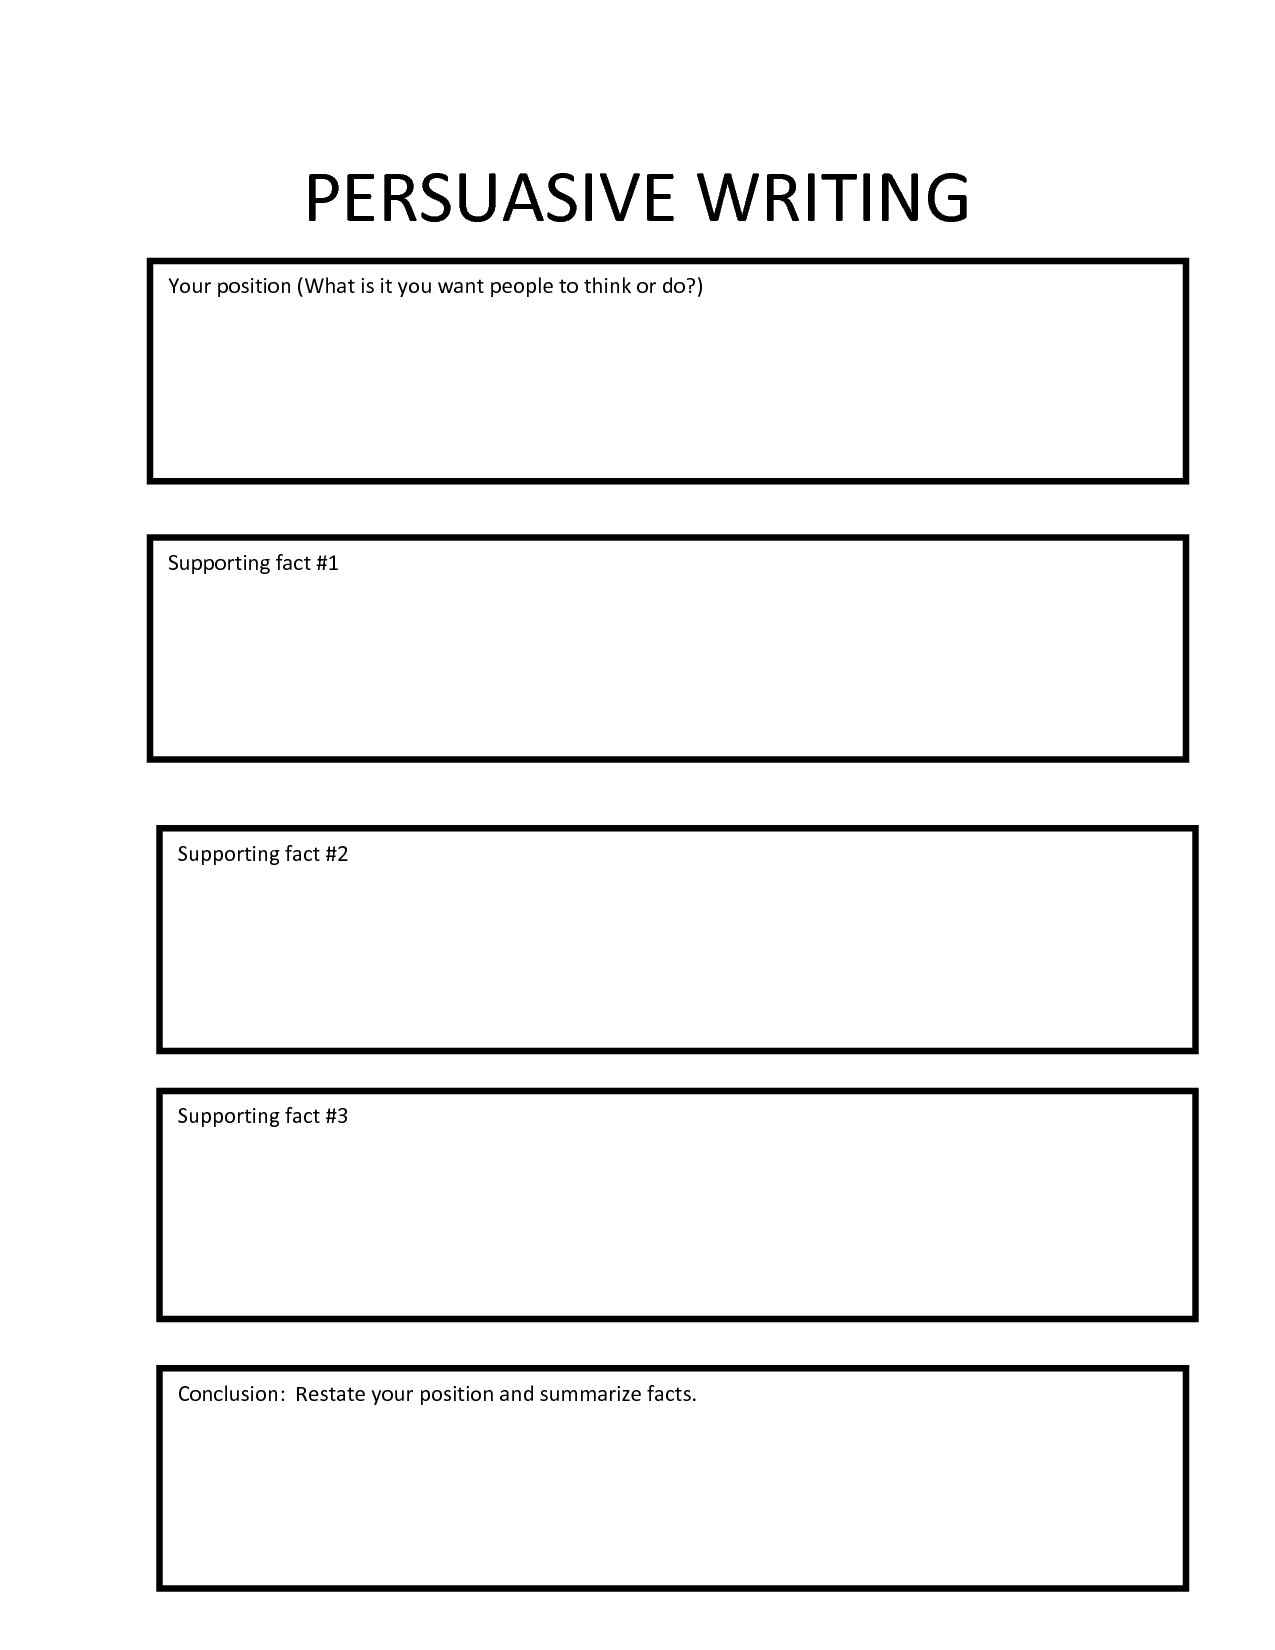 persuasive writing graphic organizer answer key